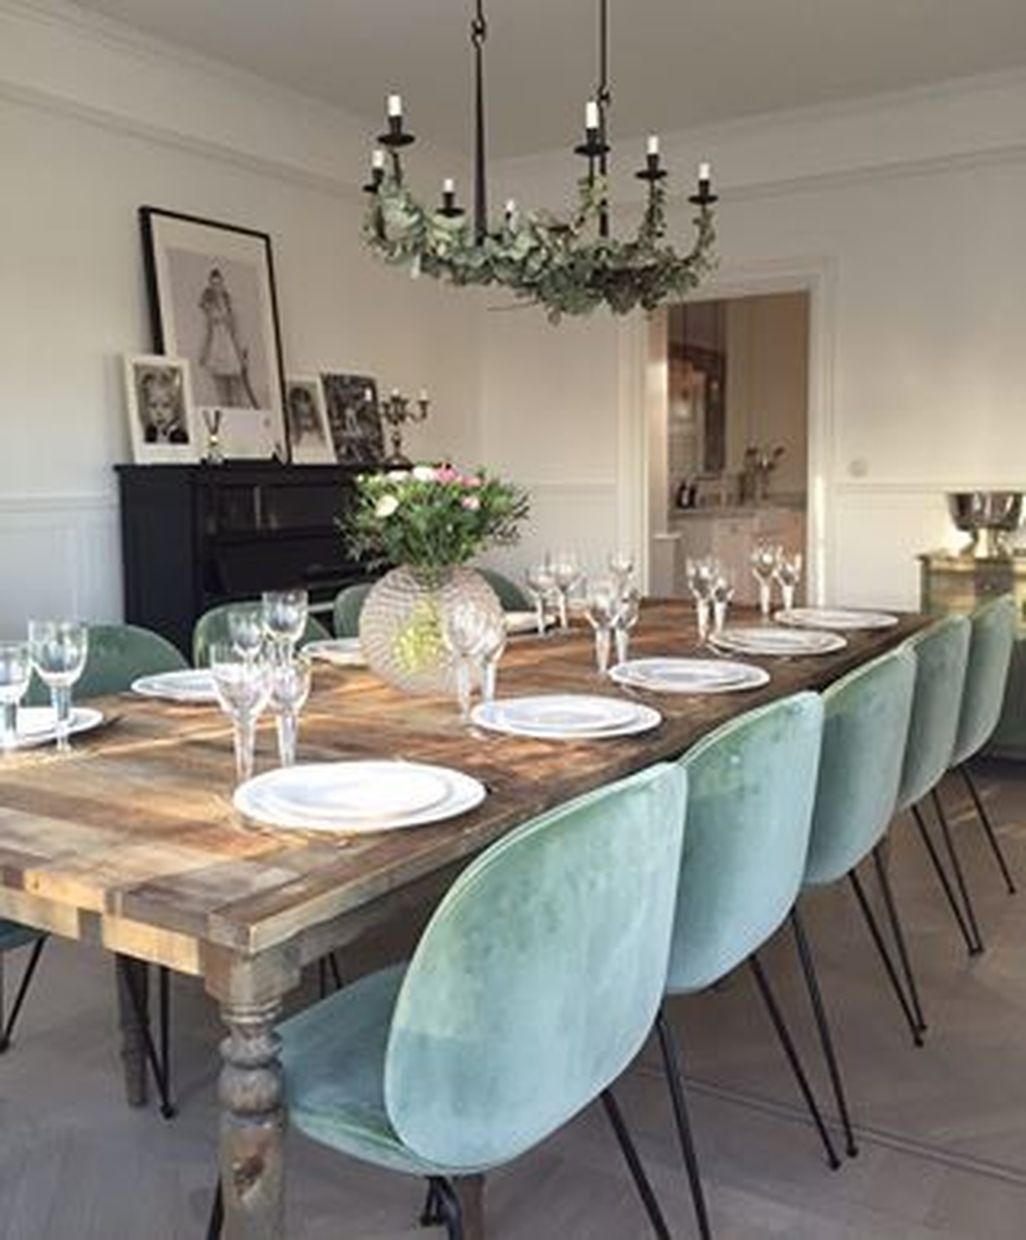 12 Rustic Dining Room Ideas: 48 Charming Rustic Dining Room Decoration Ideas